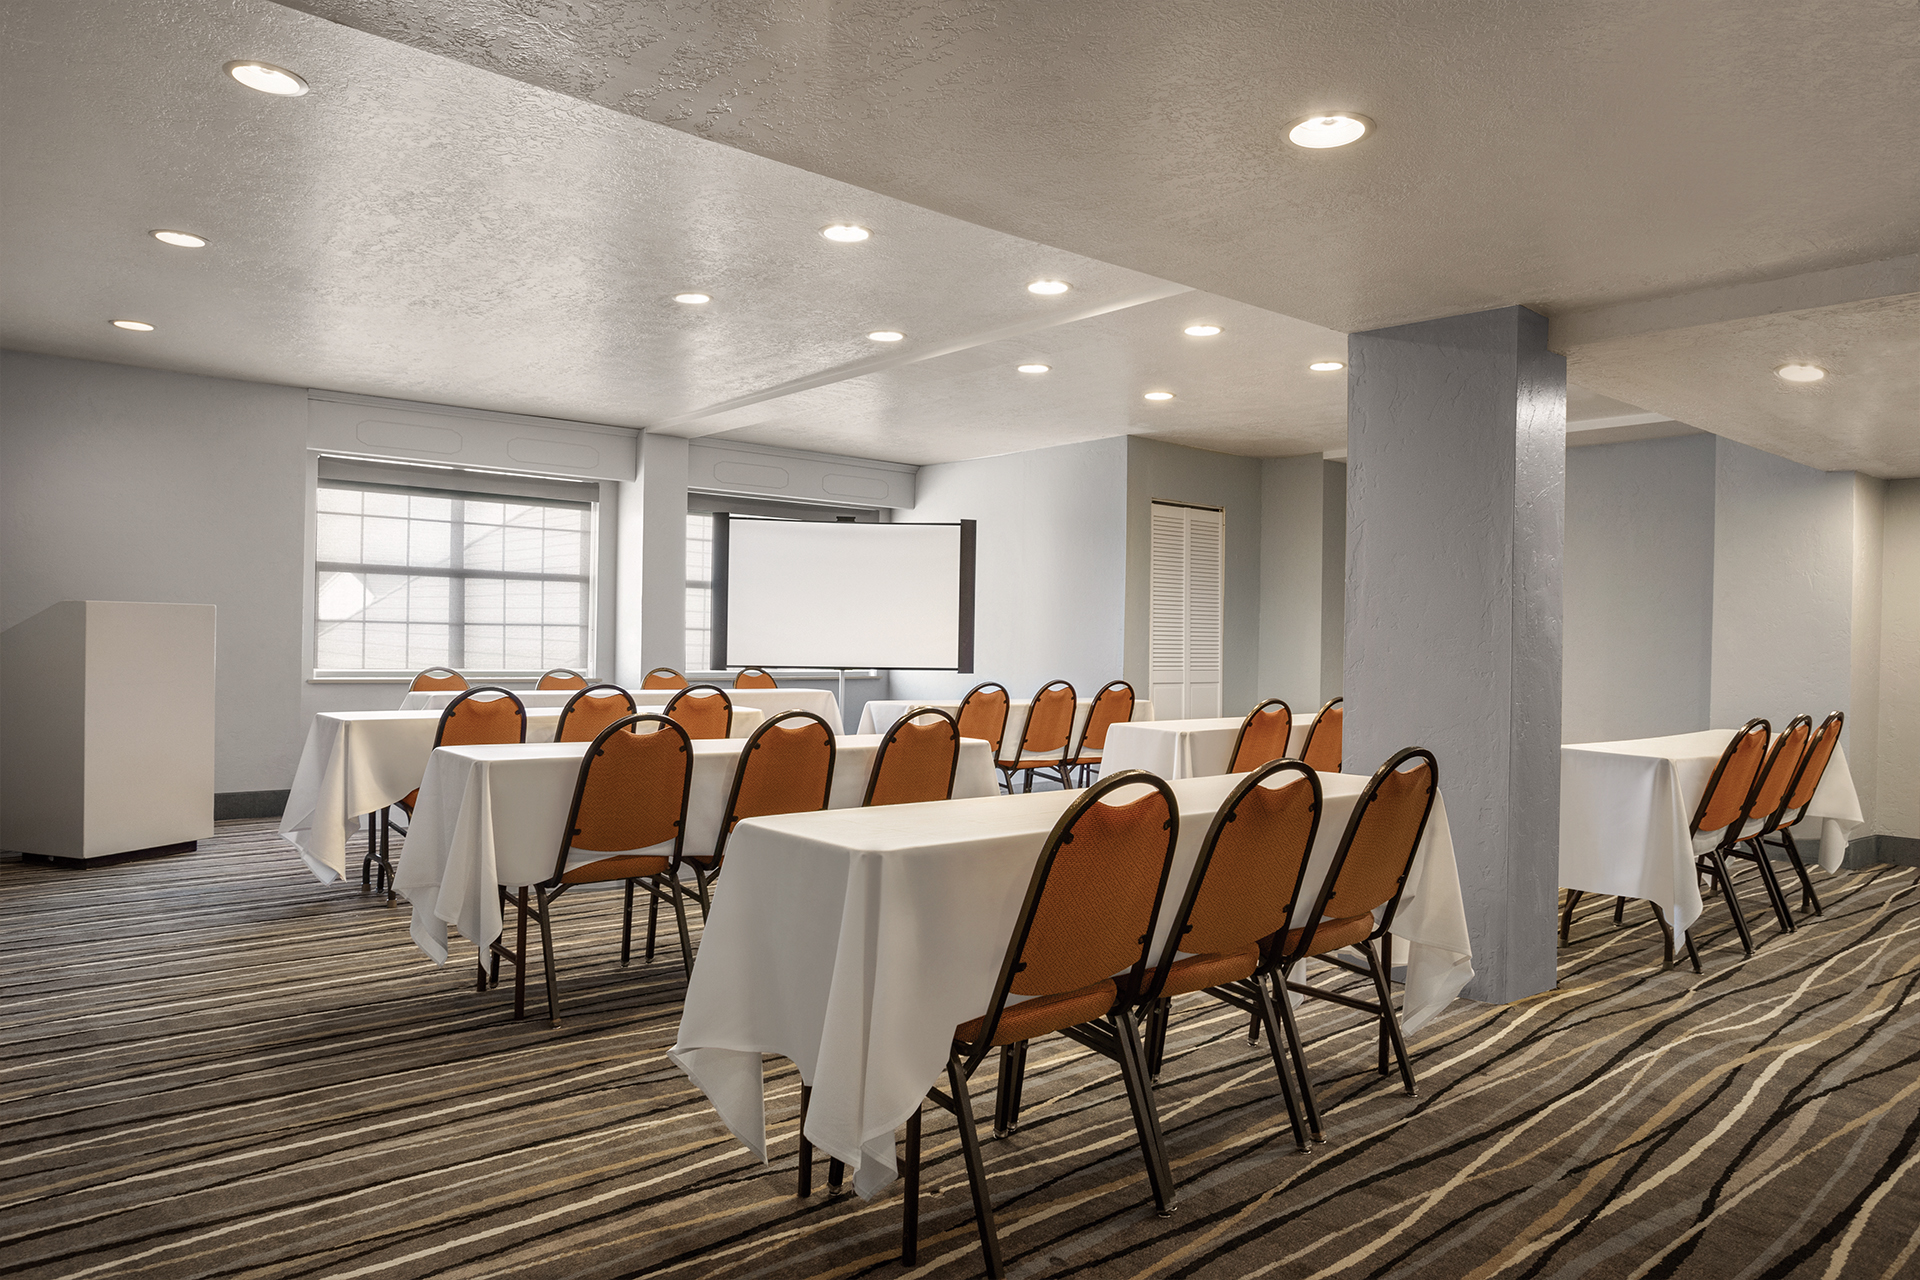 https://www.hotelsbyday.com/_data/default-hotel_image/2/10040/meeting-room.jpg